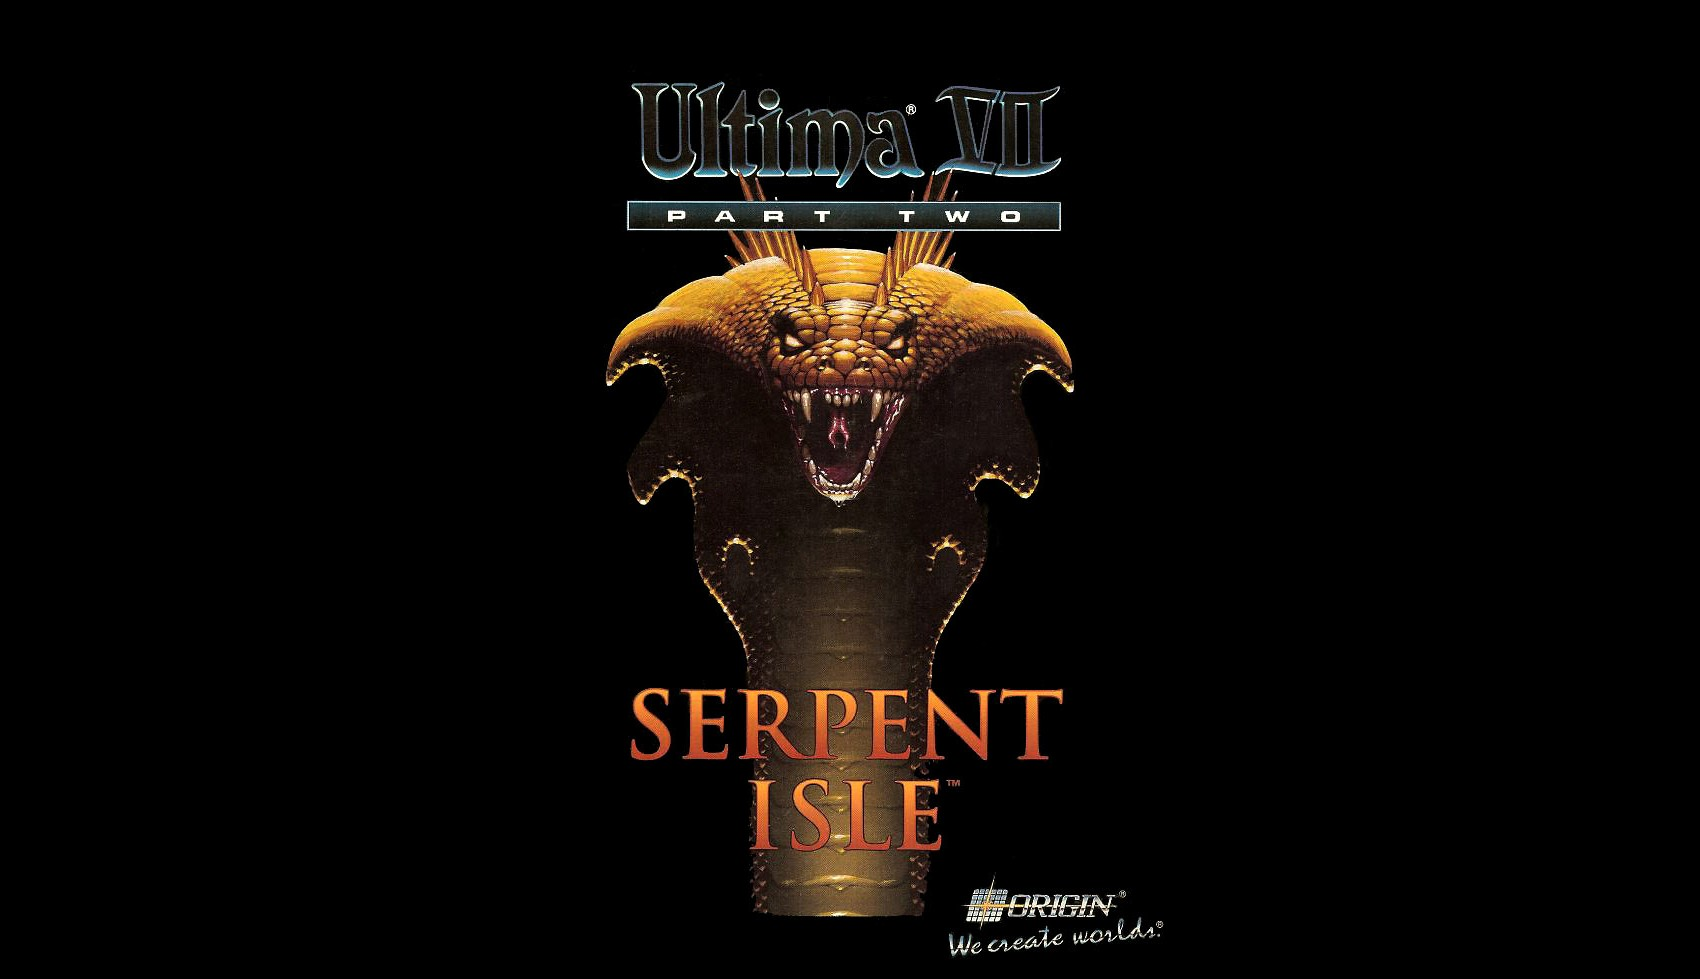 Serpent Isle is 20 years old!